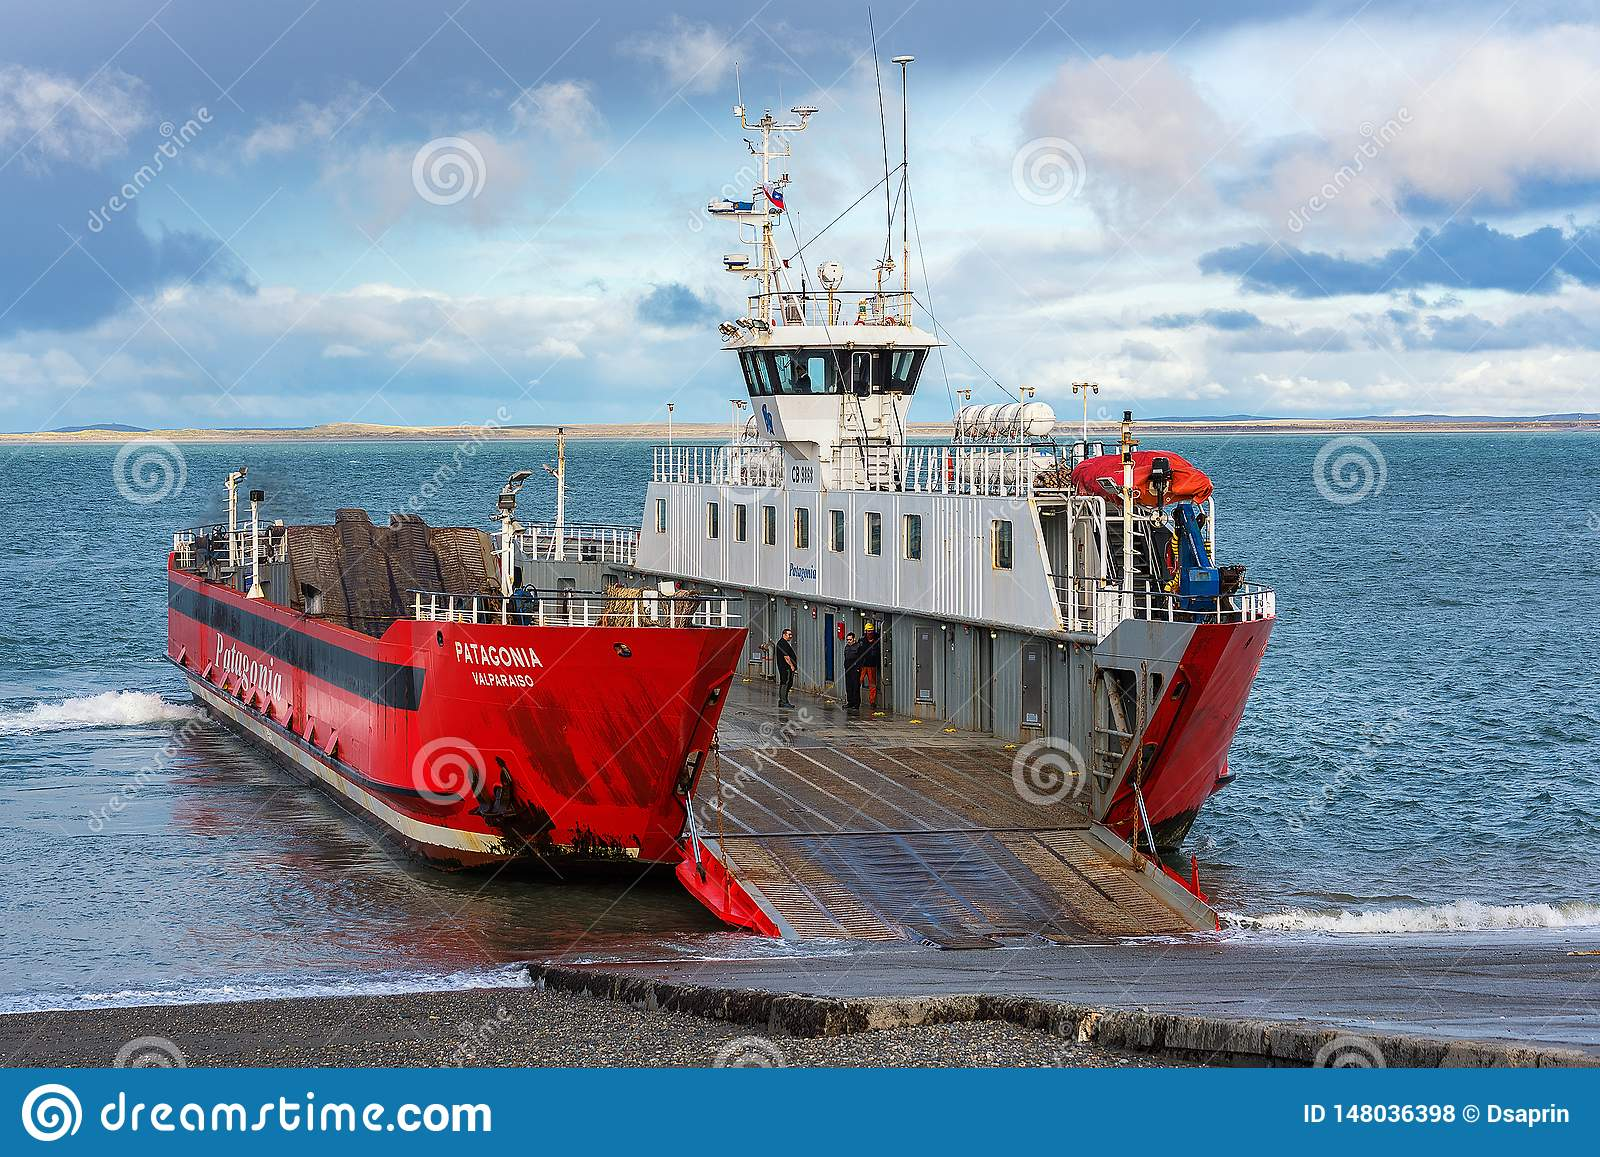 Ferry over Magellan strait between Tierra del Fuego island and mainland, Chile